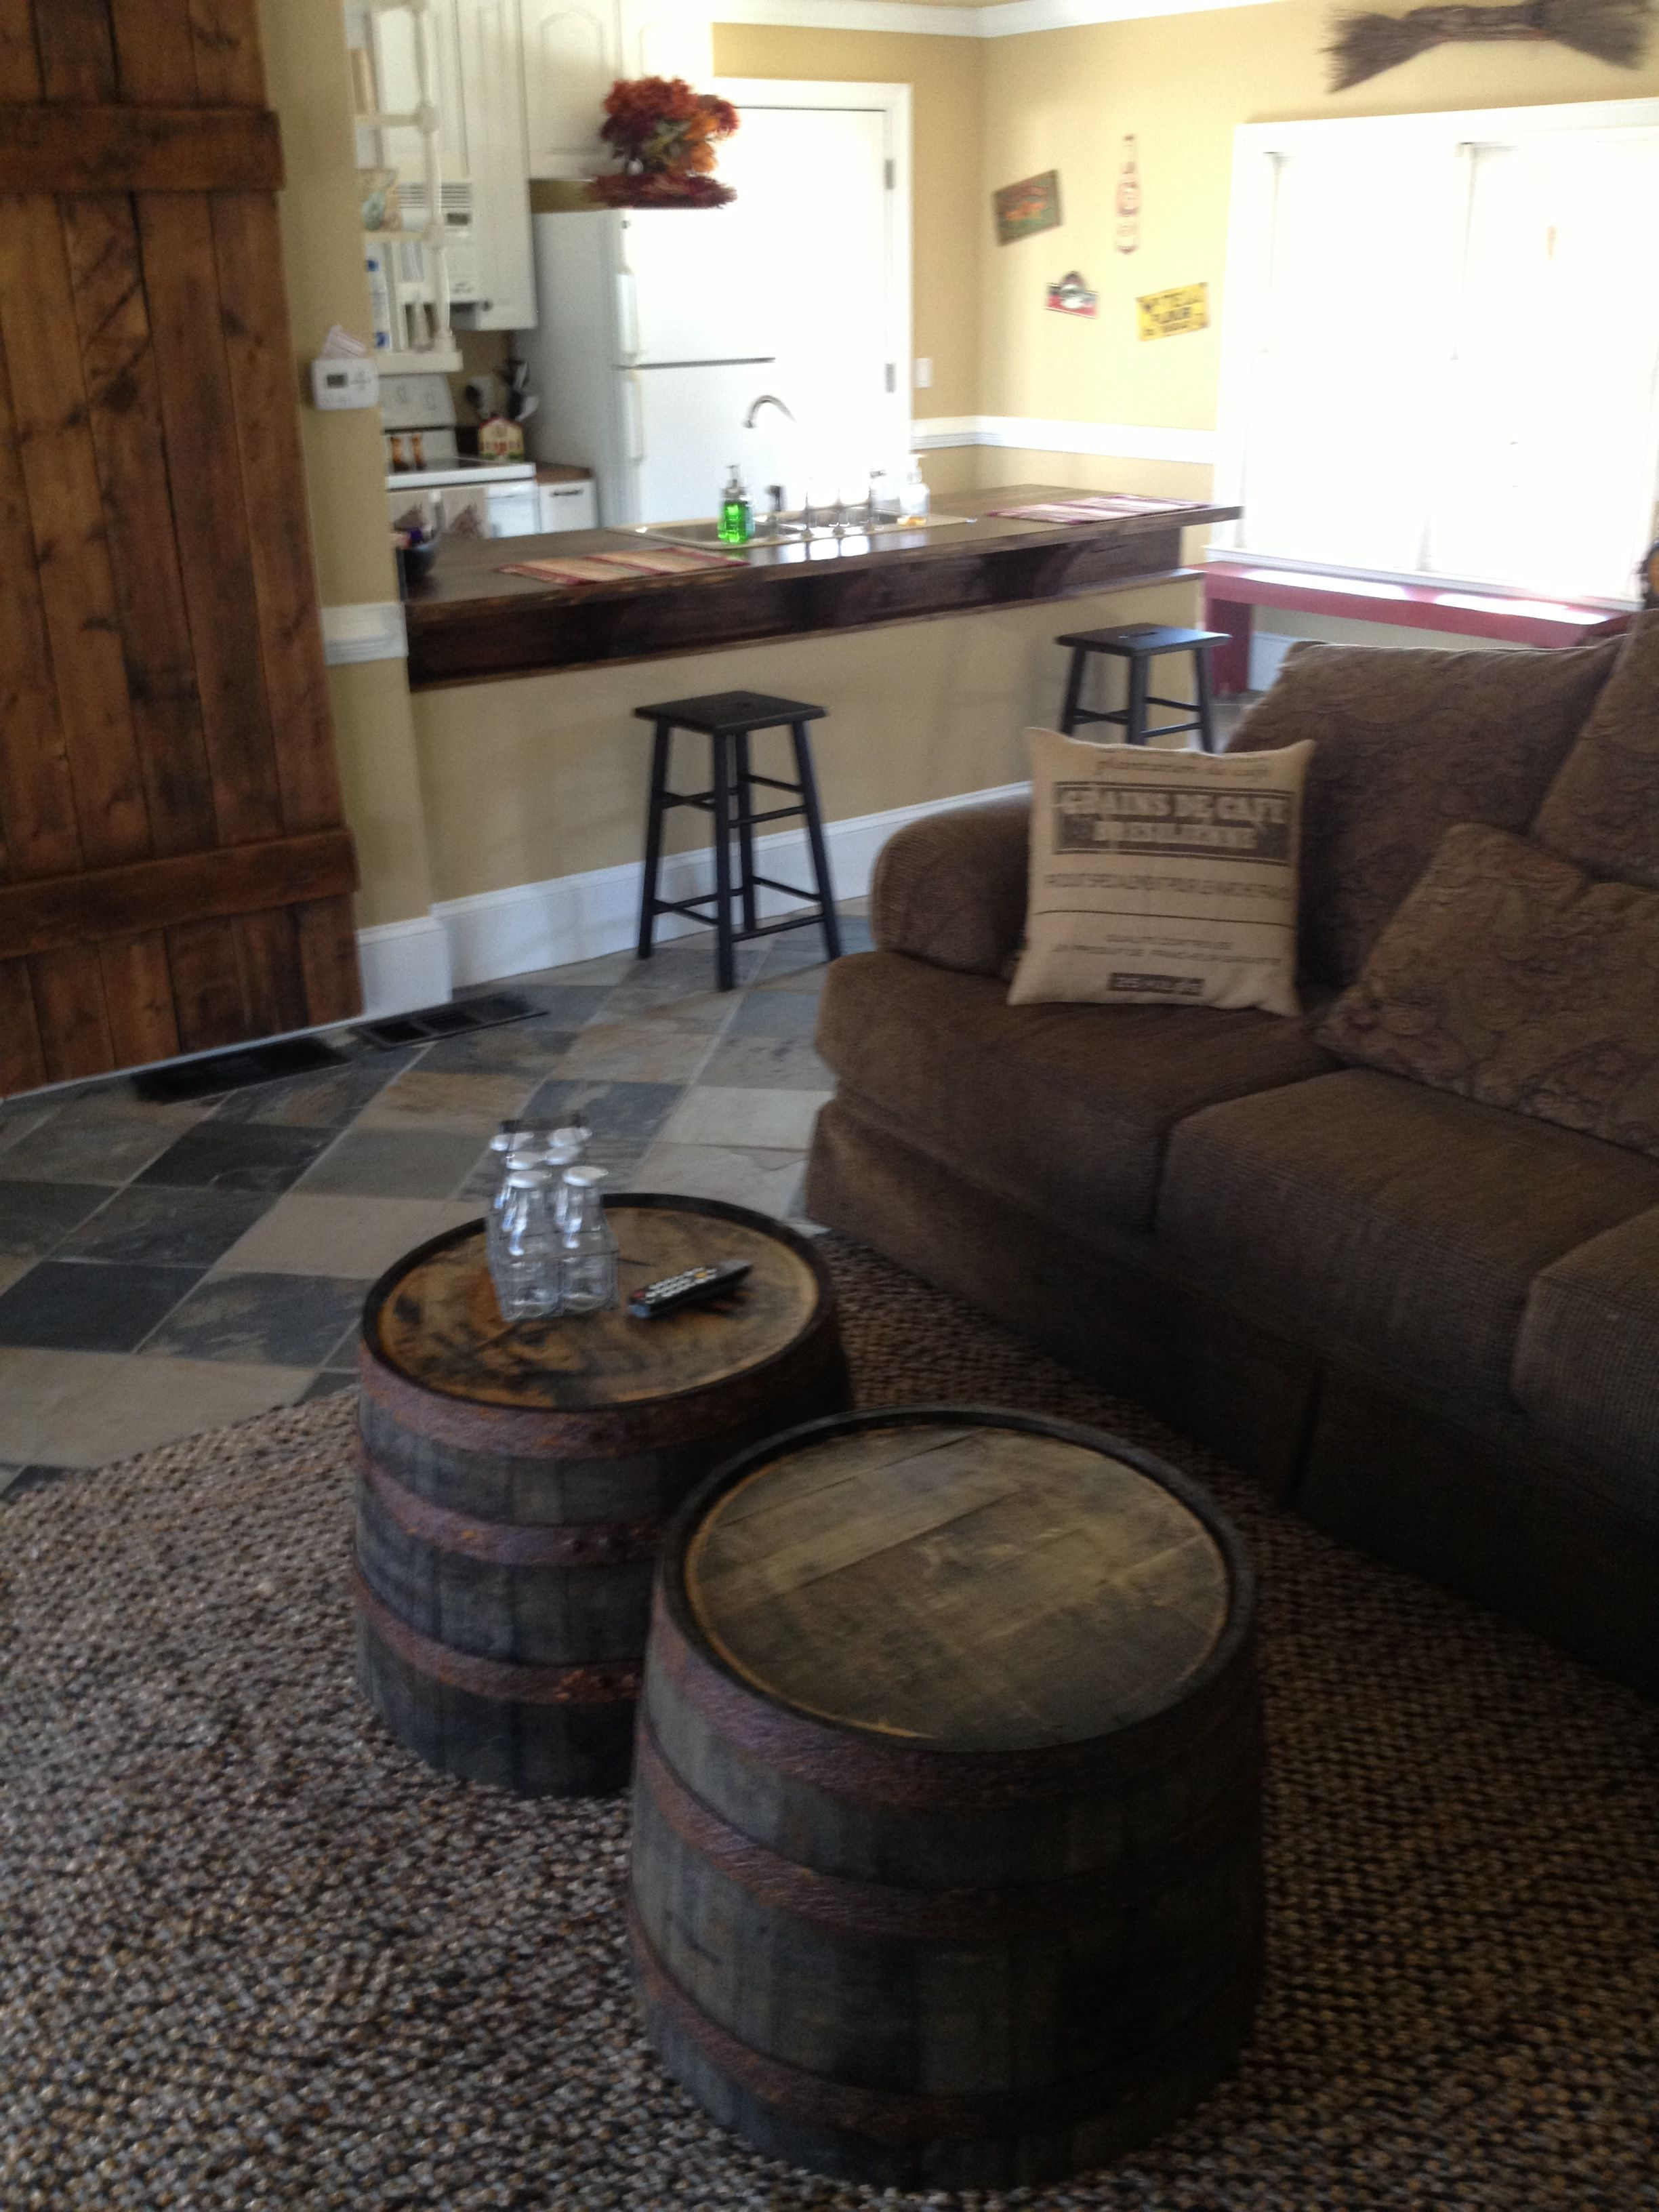 Jack daniels barrels from hd used as coffee table i did it jack daniels barrels from hd used as coffee table geotapseo Images